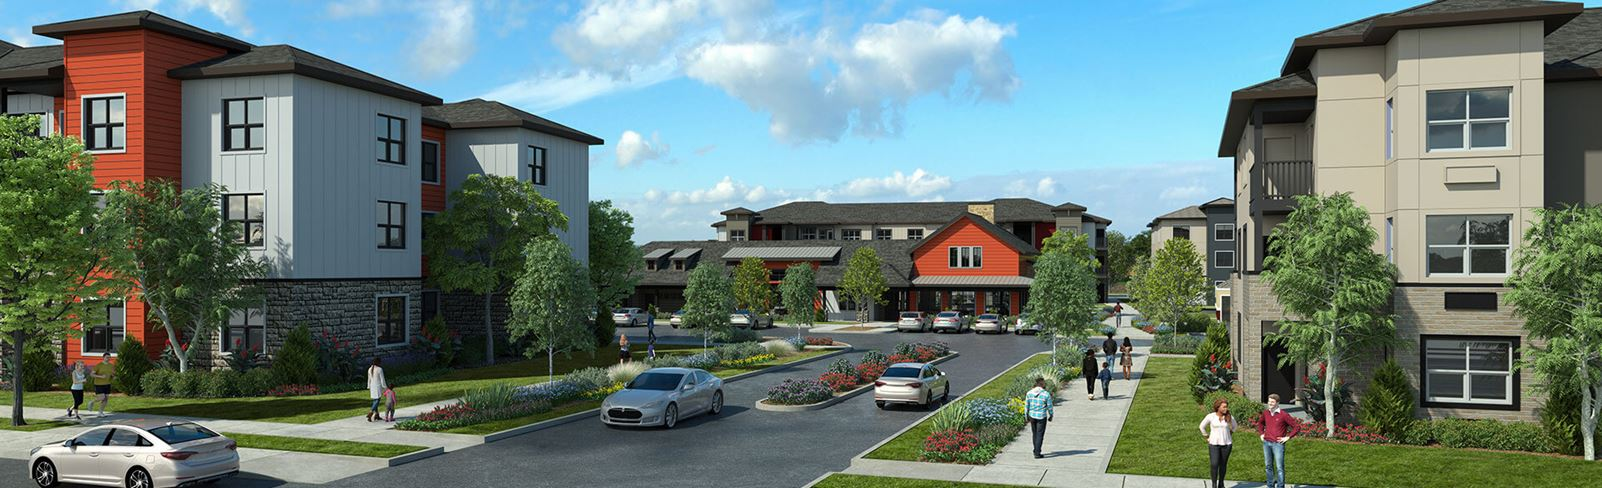 Zera Apartments in Reed's Crossing South Hillsboro Oregon - Apartment Rendering